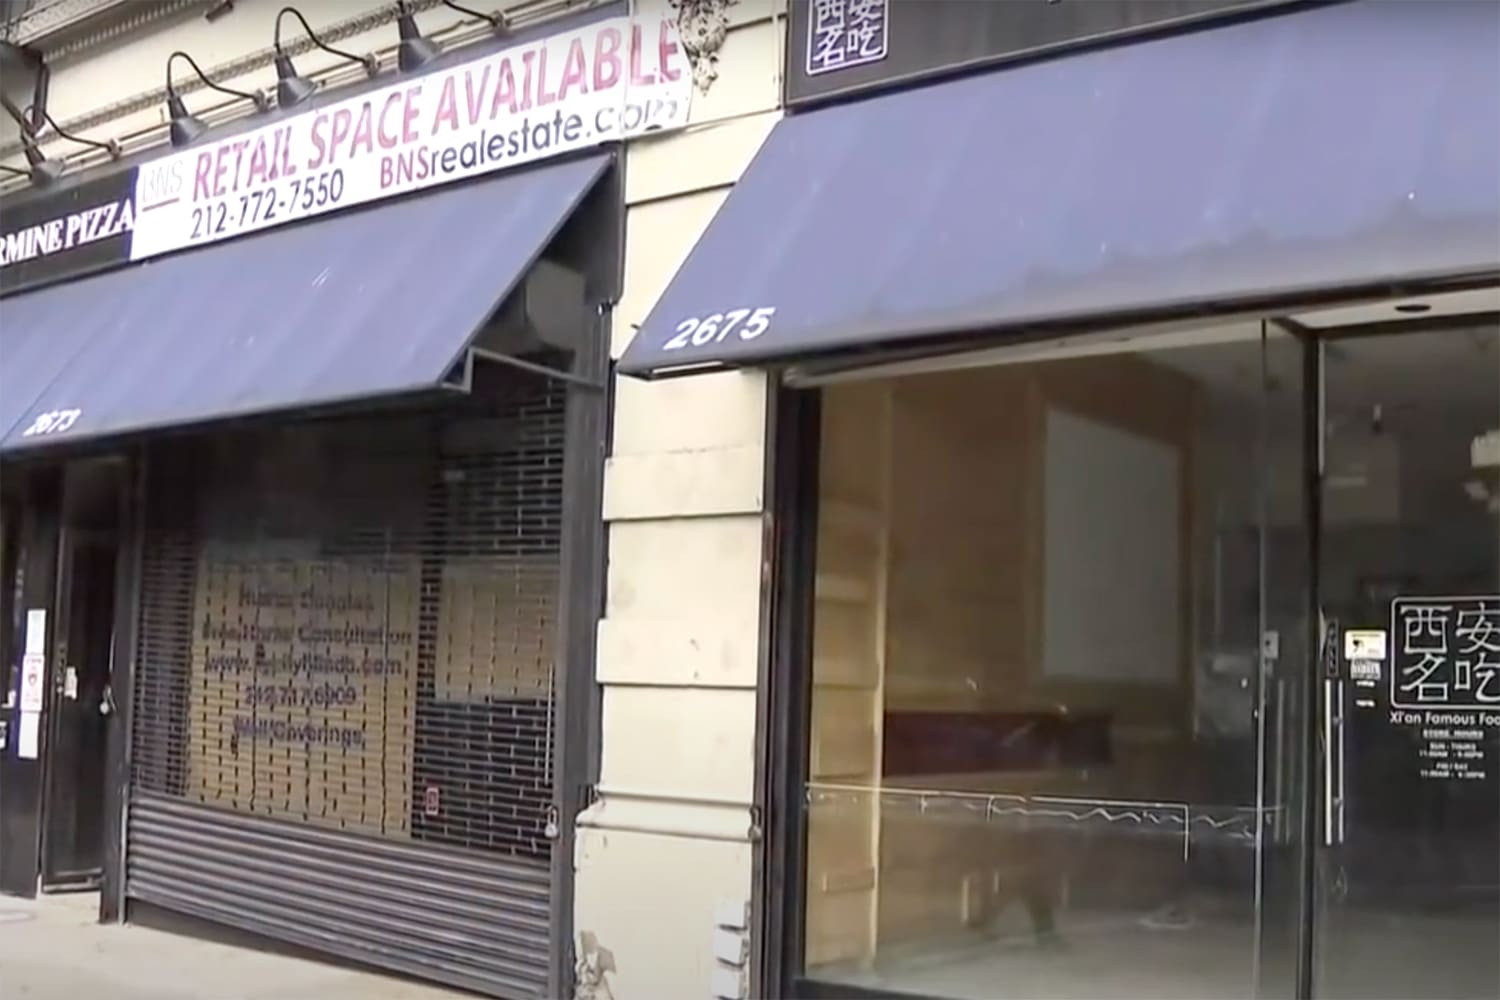   Closed businesses on Broadway NYC   MR Online